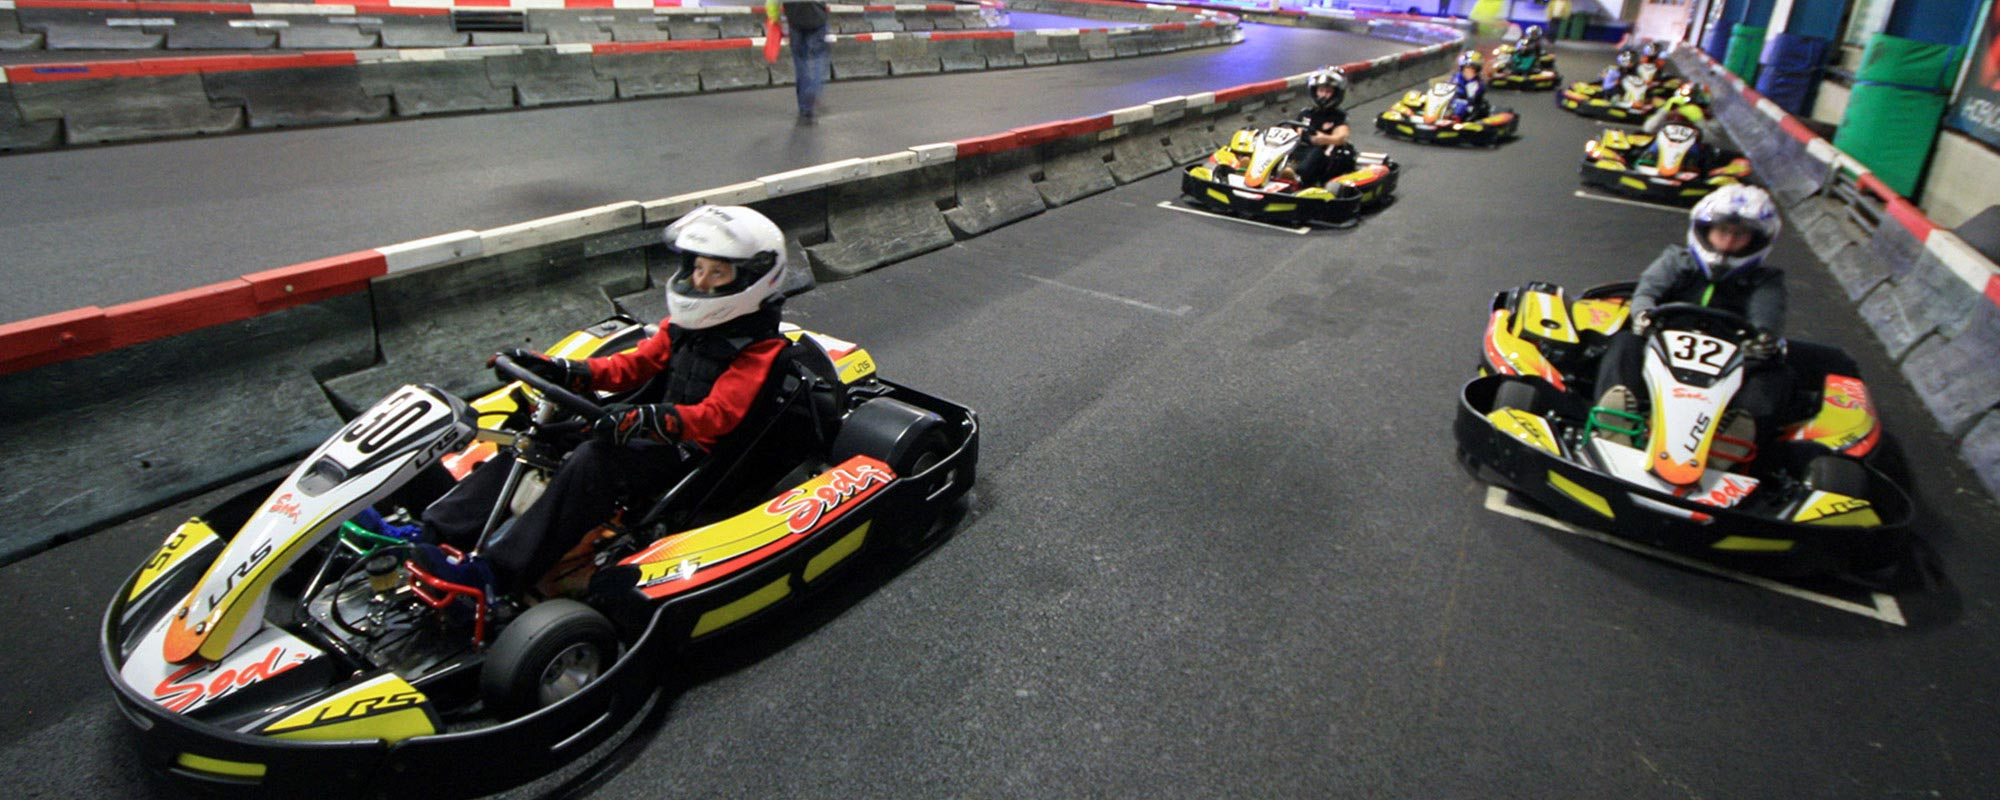 ebafkc-juniorkarting-2000x800-03